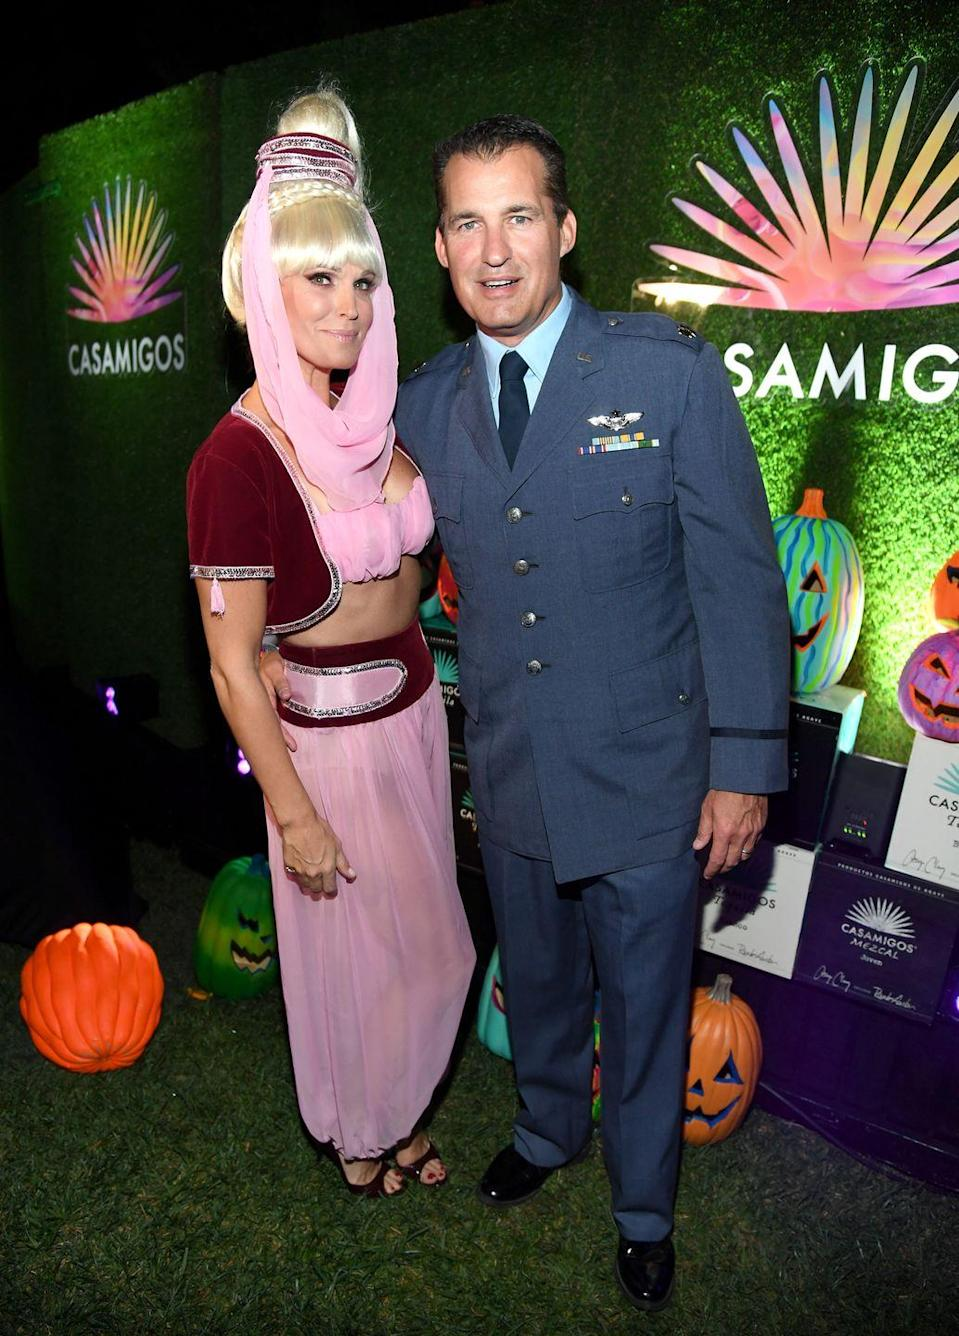 <p>Molly Sims and her husband, Scott Stuber, threw it back to the '60s to pay tribute to one of the best shows of all time, <em>I Dream of Jeannie</em>. We just hope she didn't have to refer to him as Master all night...</p>